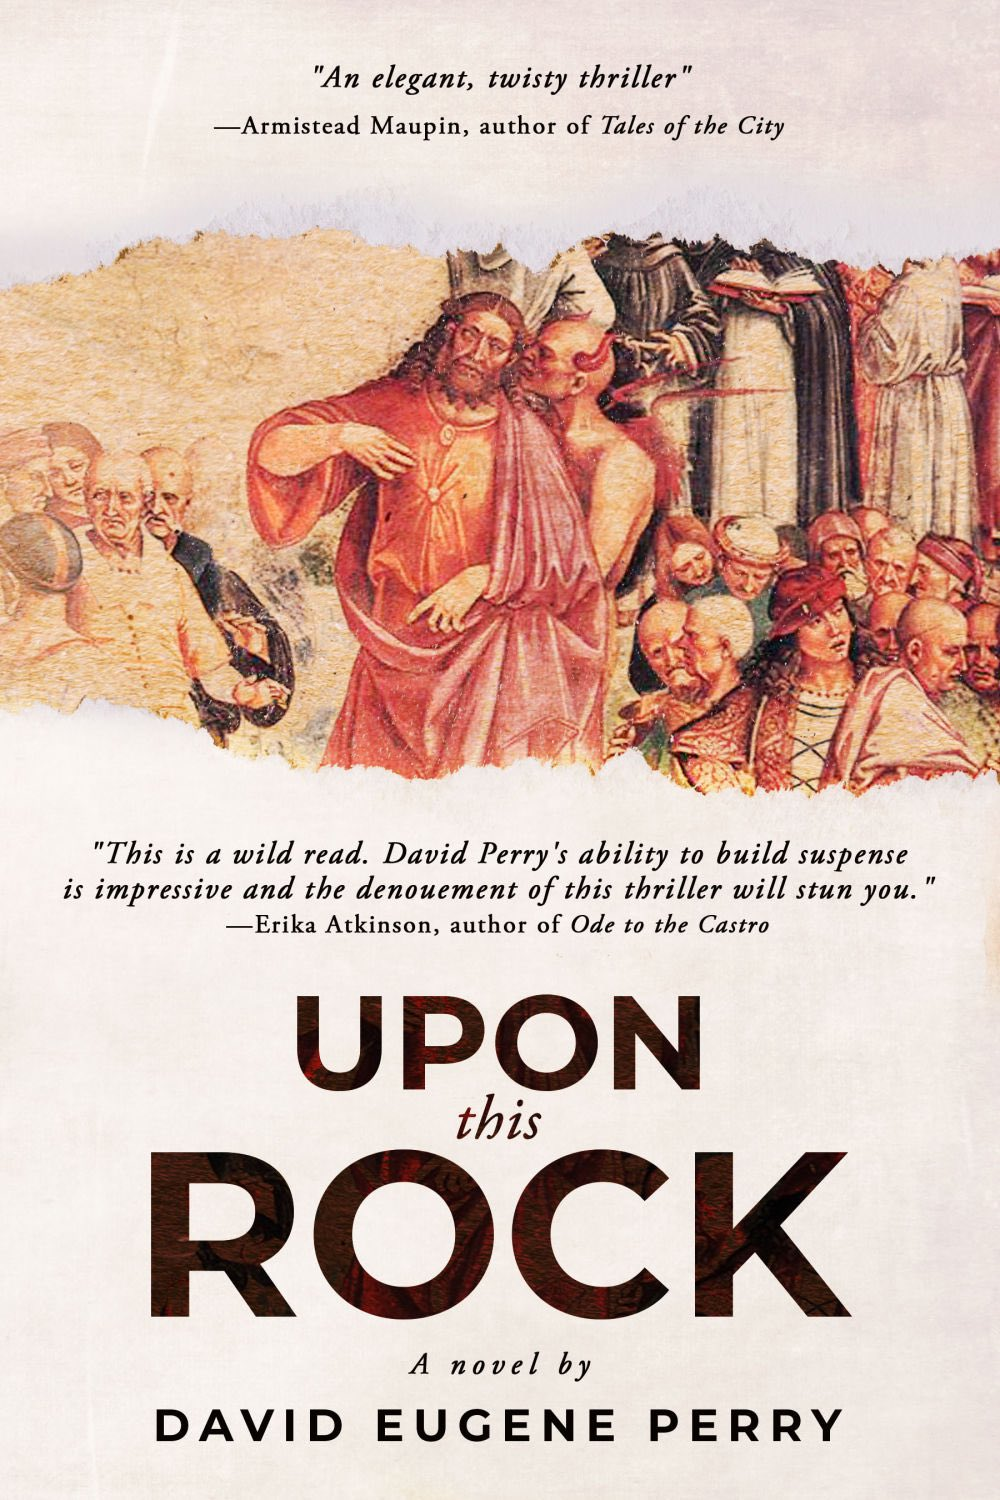 """Writing when one is more mature, settled, and less insecure is the perfect time to start a new adventure, David Perry, author of """"Upon this Rock"""" says."""